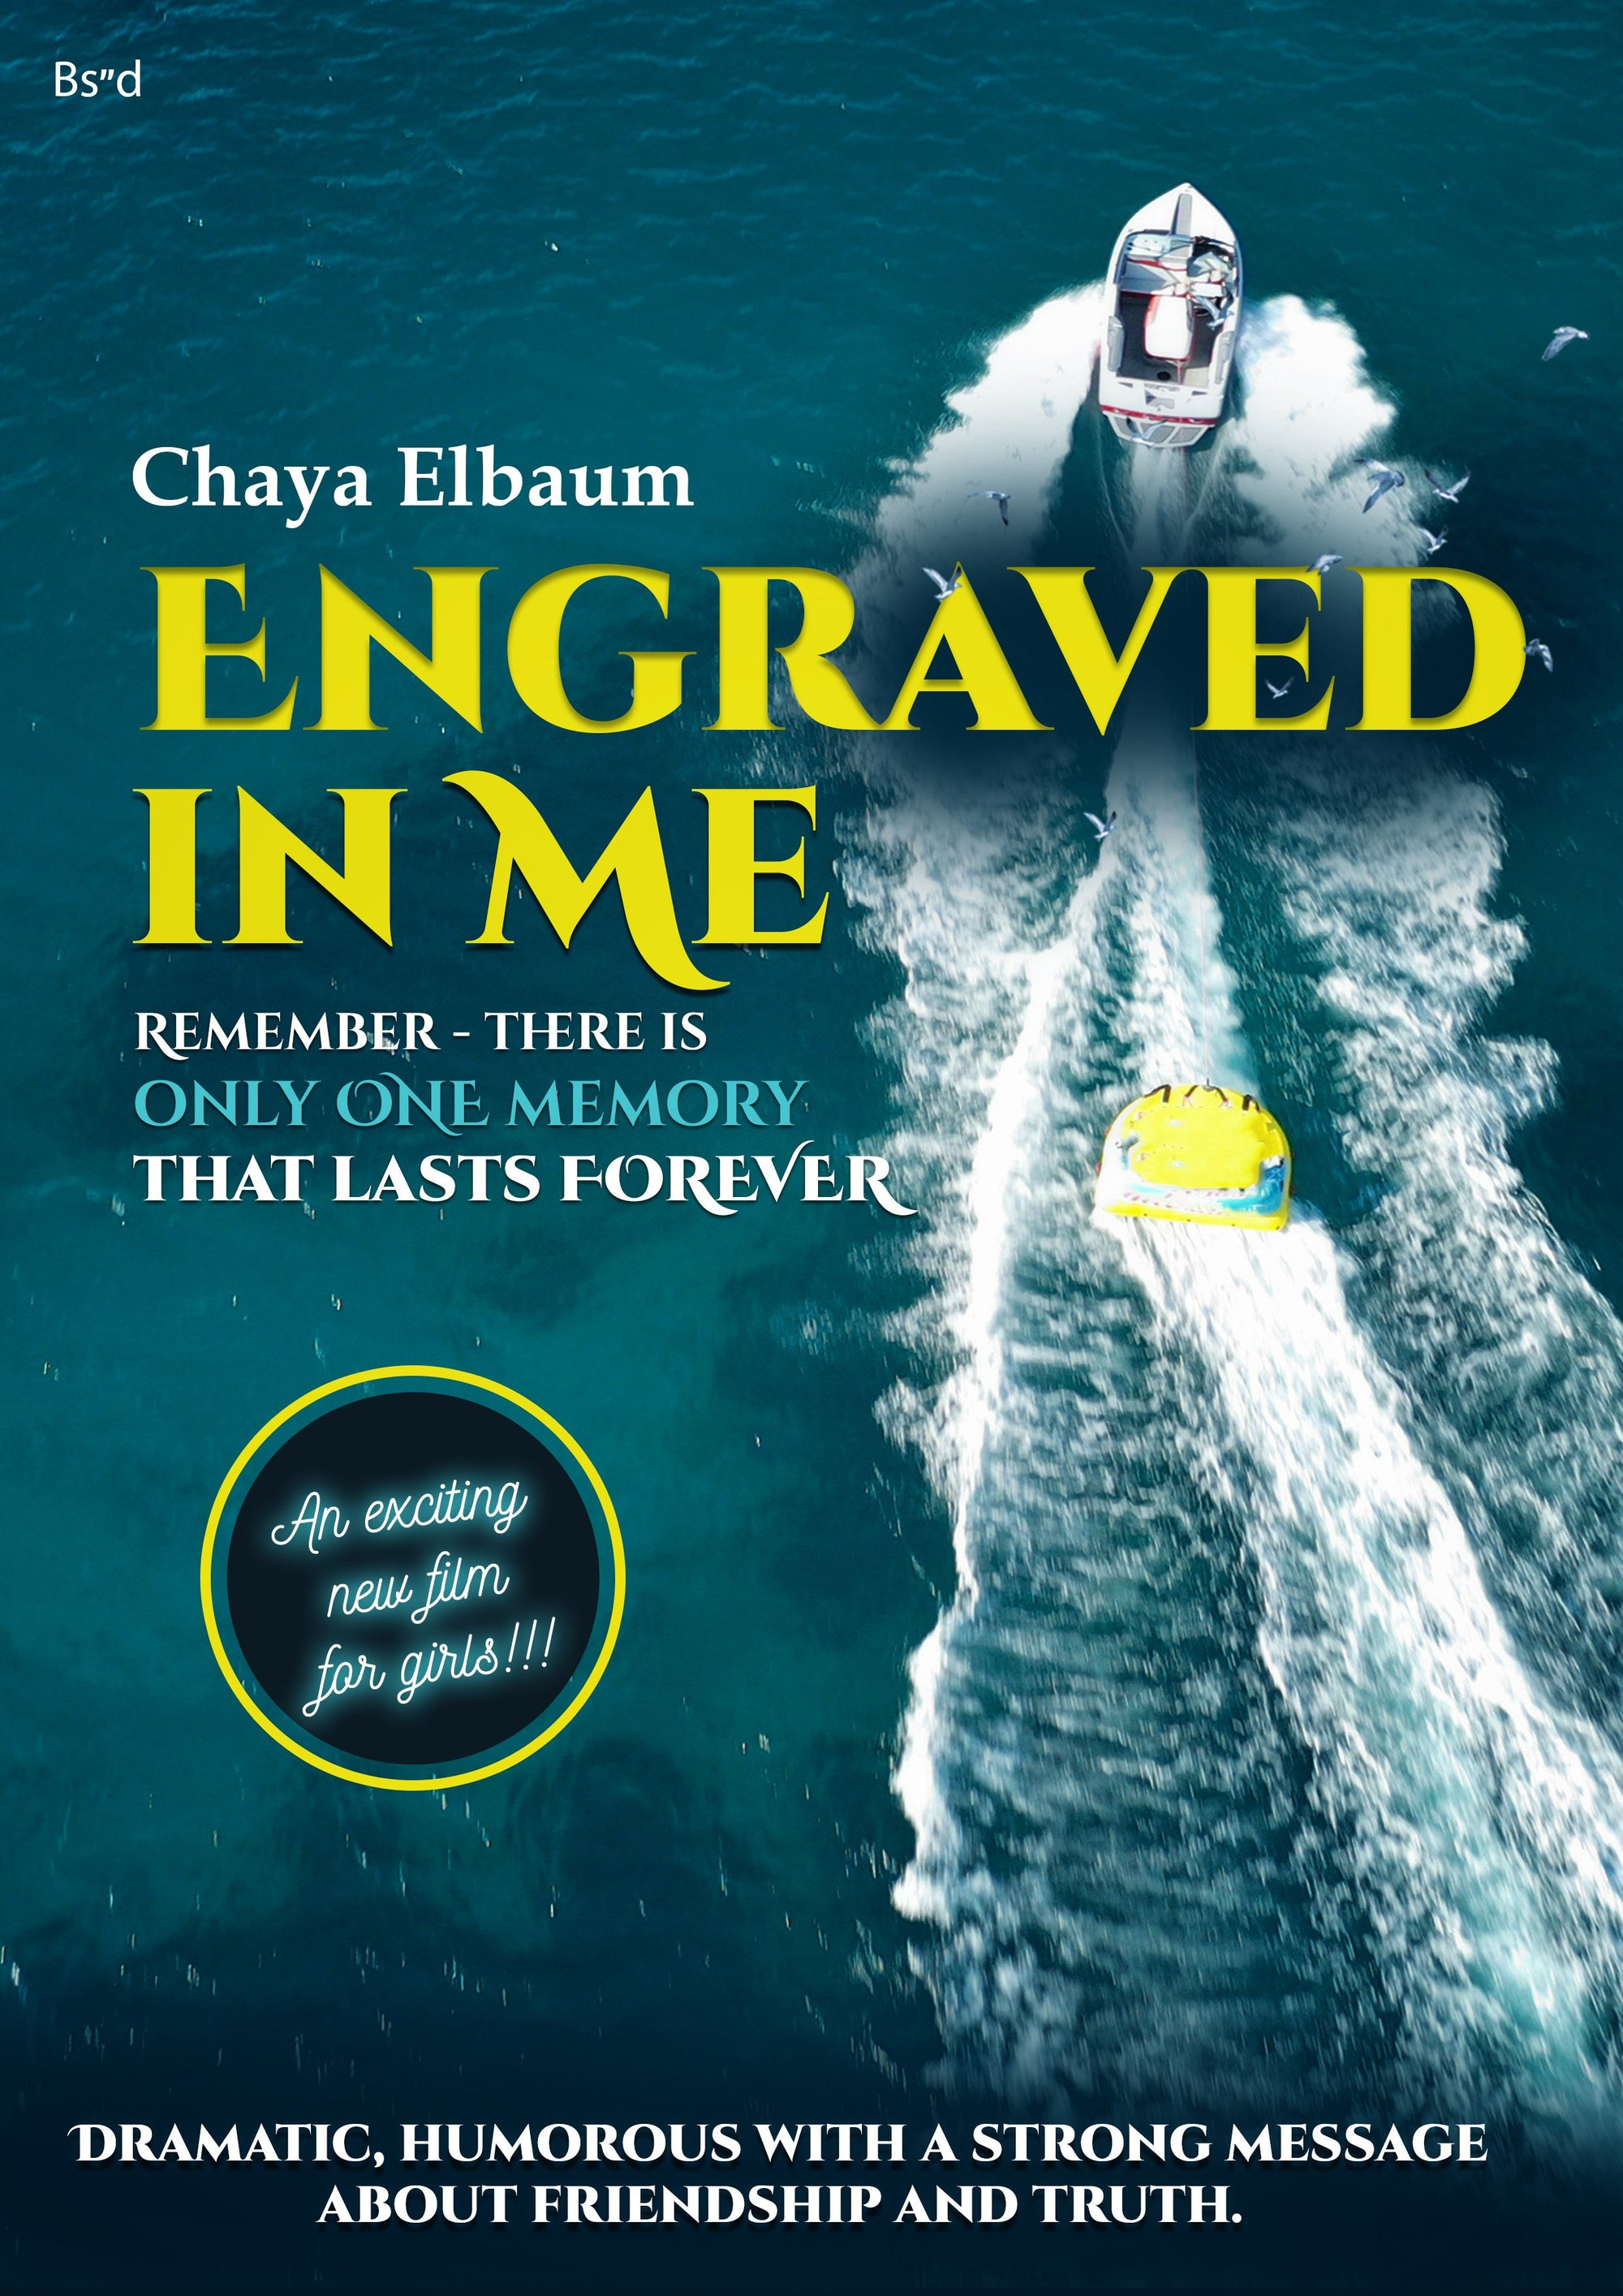 Chaya Elbaum - Engraved In Me (Video)